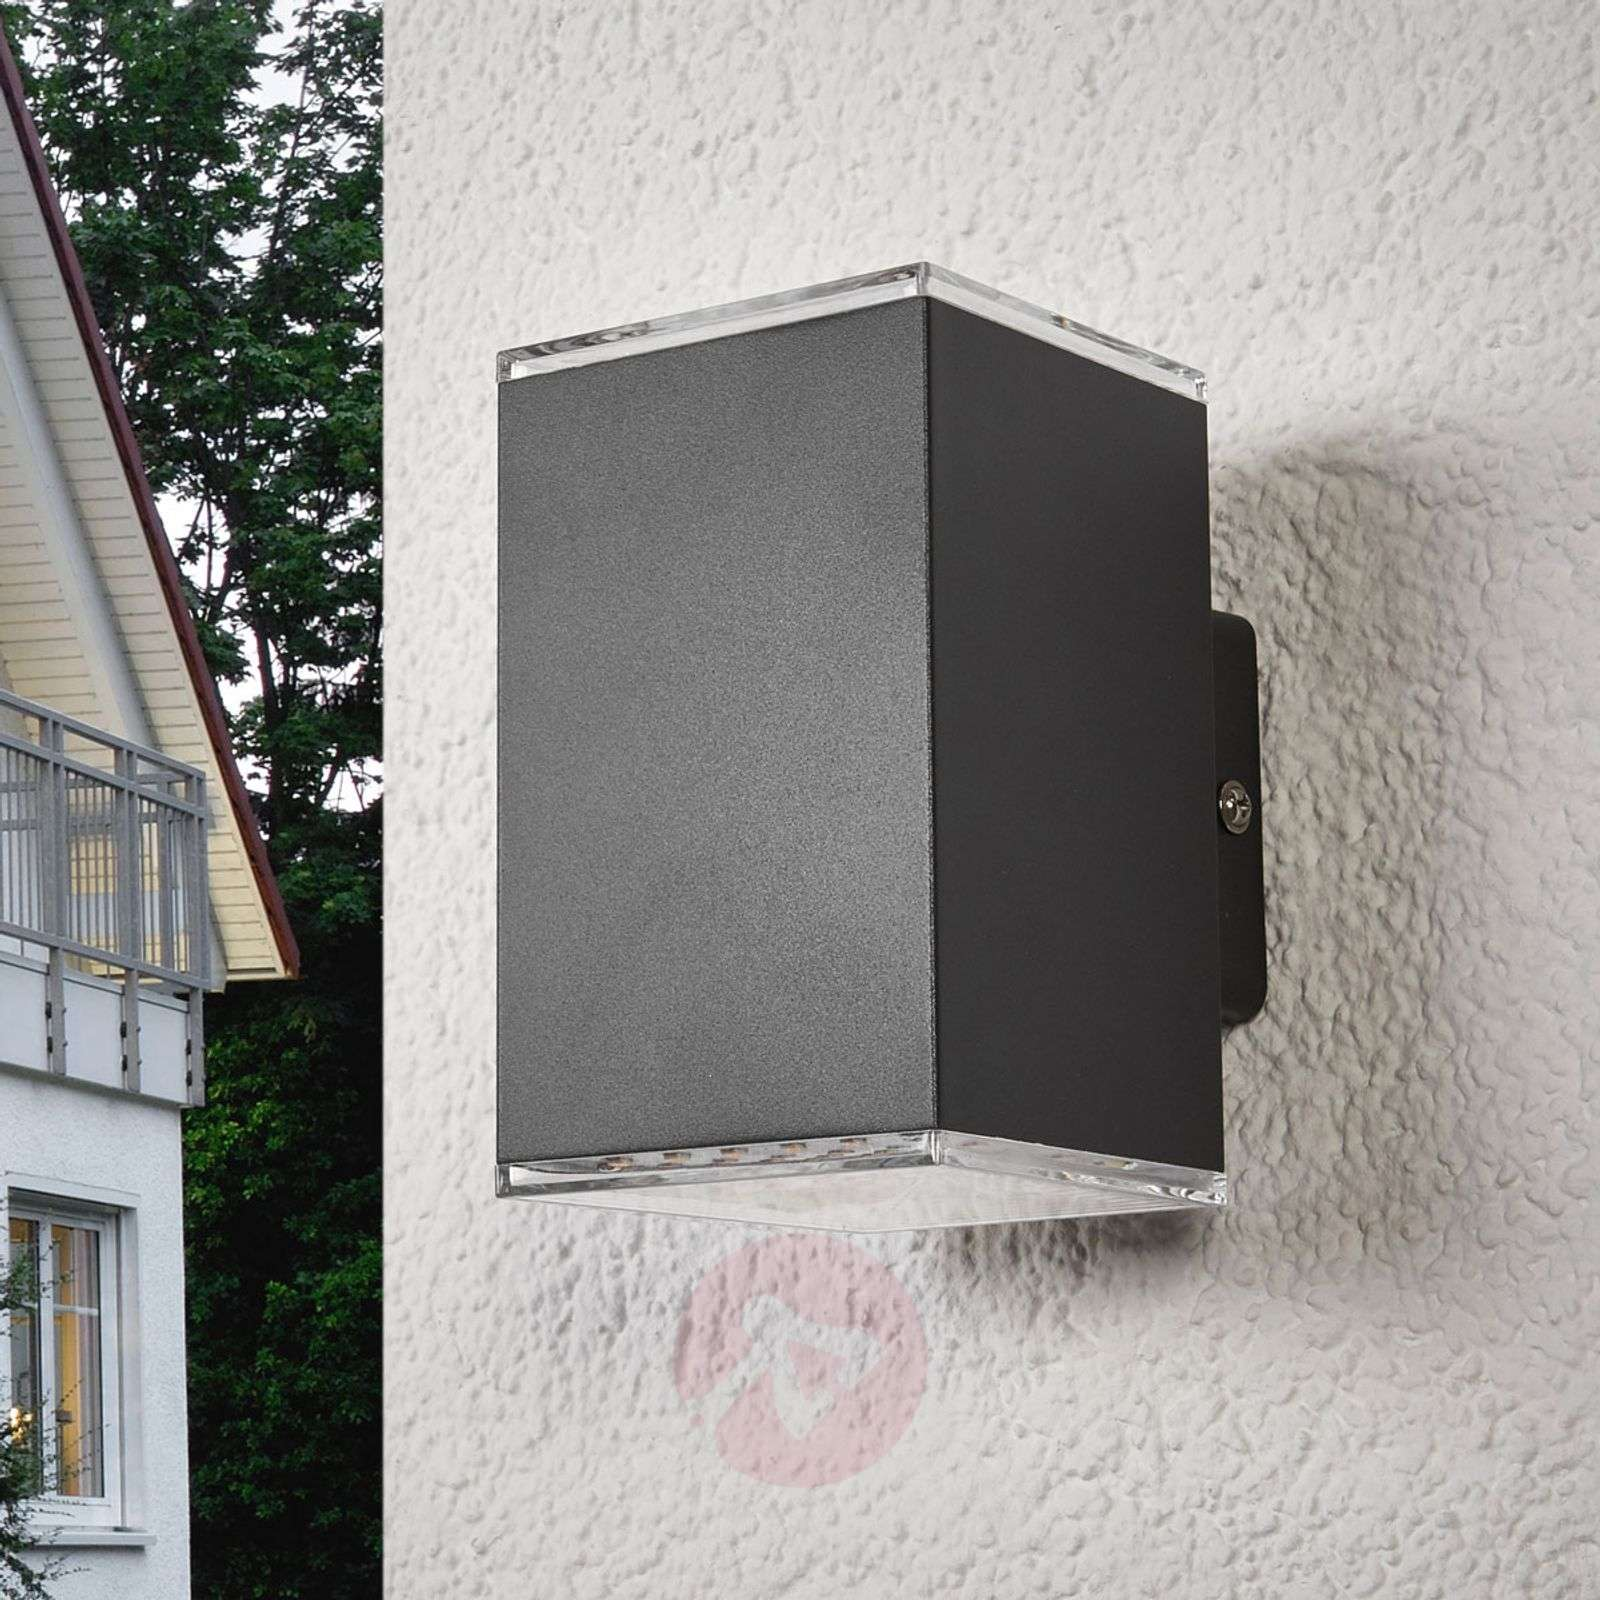 Compra aplique de pared exterior led lydia 2 llamas - Aplique de pared exterior ...